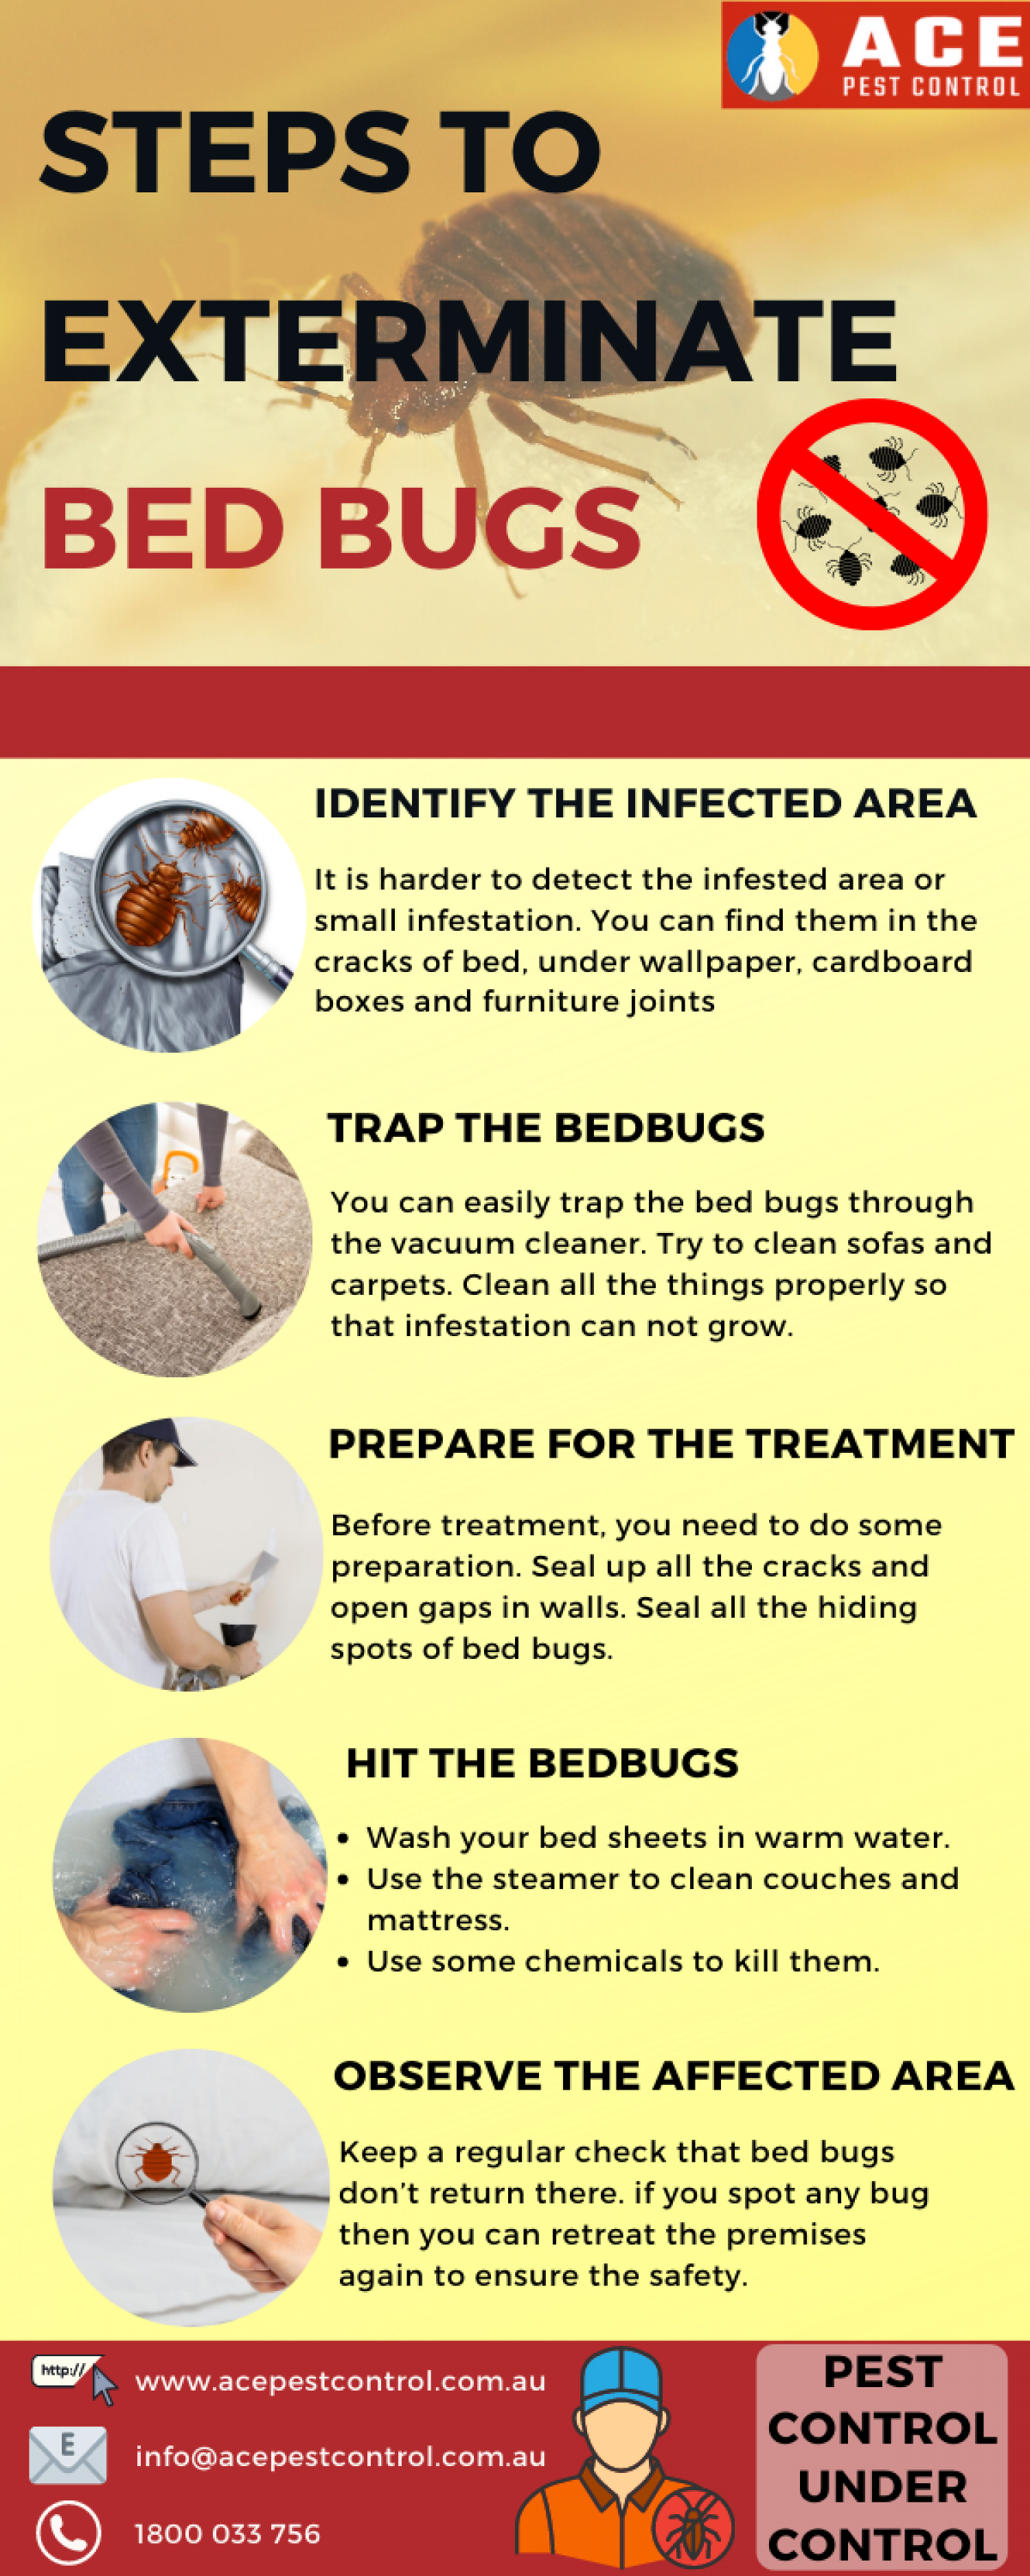 Steps To Exterminate Bed Bugs | Ace Pest Control Infographic